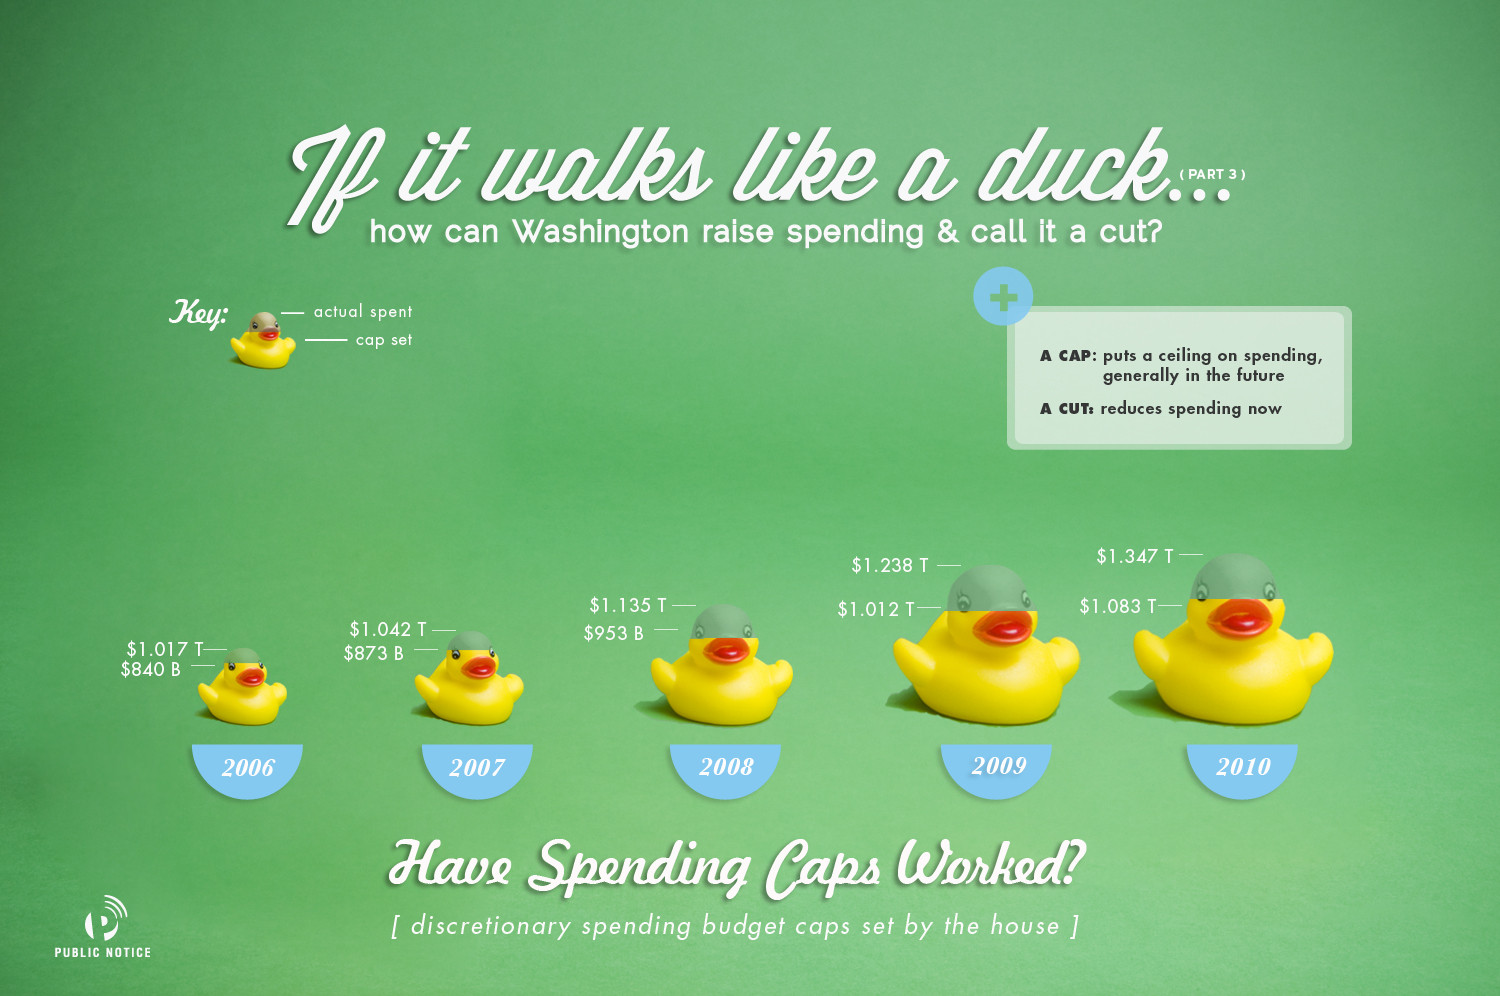 If It Walks Like a Duck: Part 3 Infographic